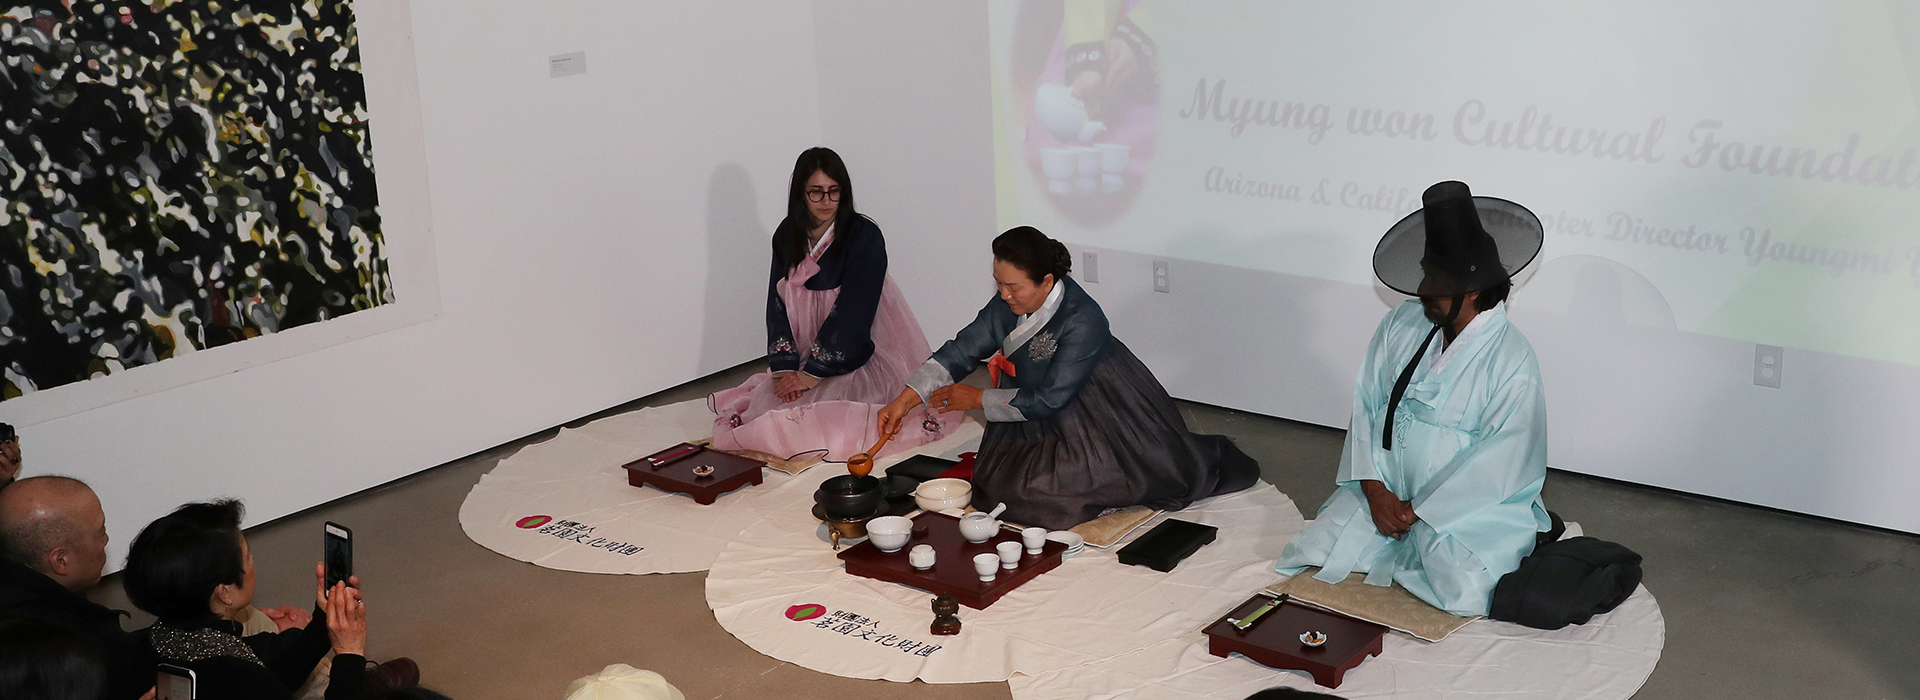 CSUSB's art museum hosts traditional Korean tea ceremony